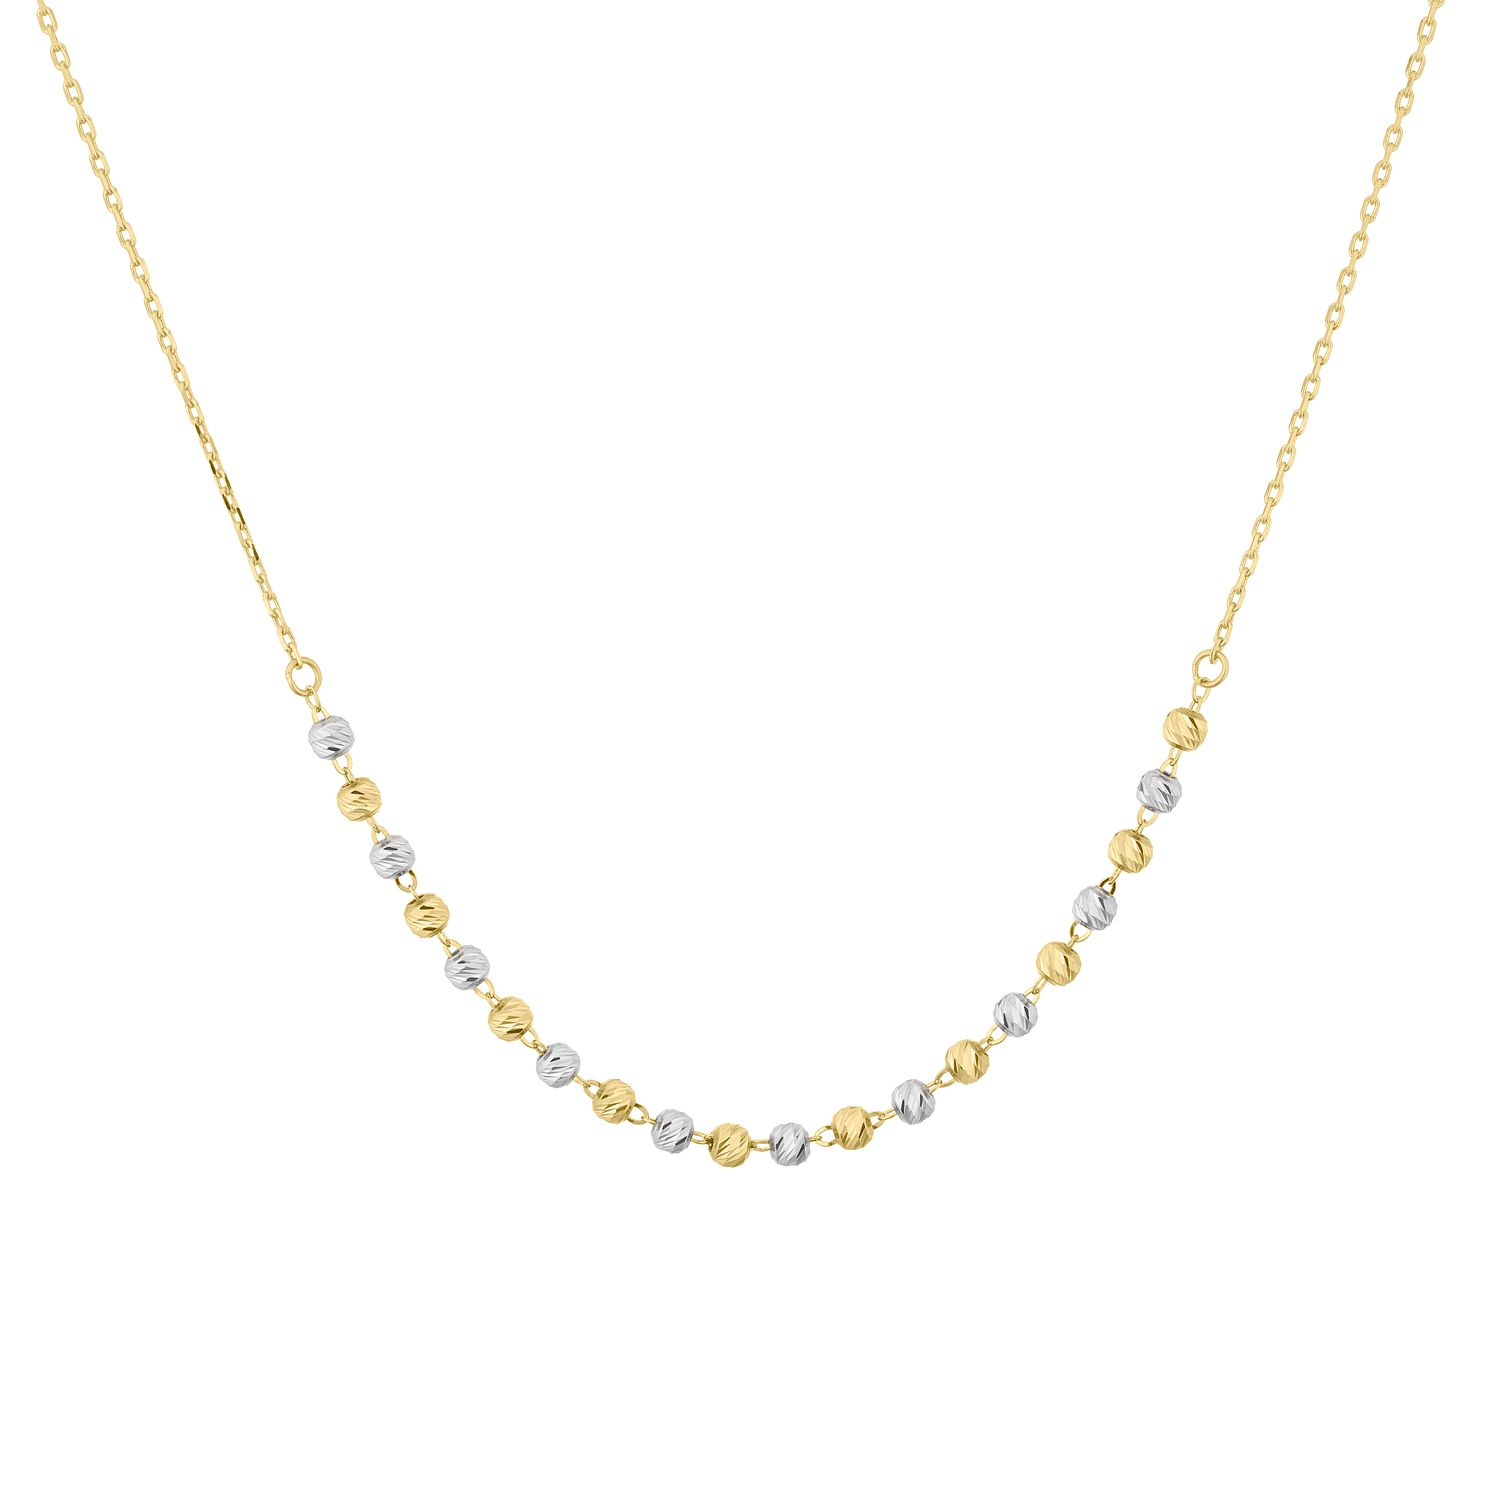 9ct Two Colour Gold Diamond-Cut Ball Necklace - Product number 5088925